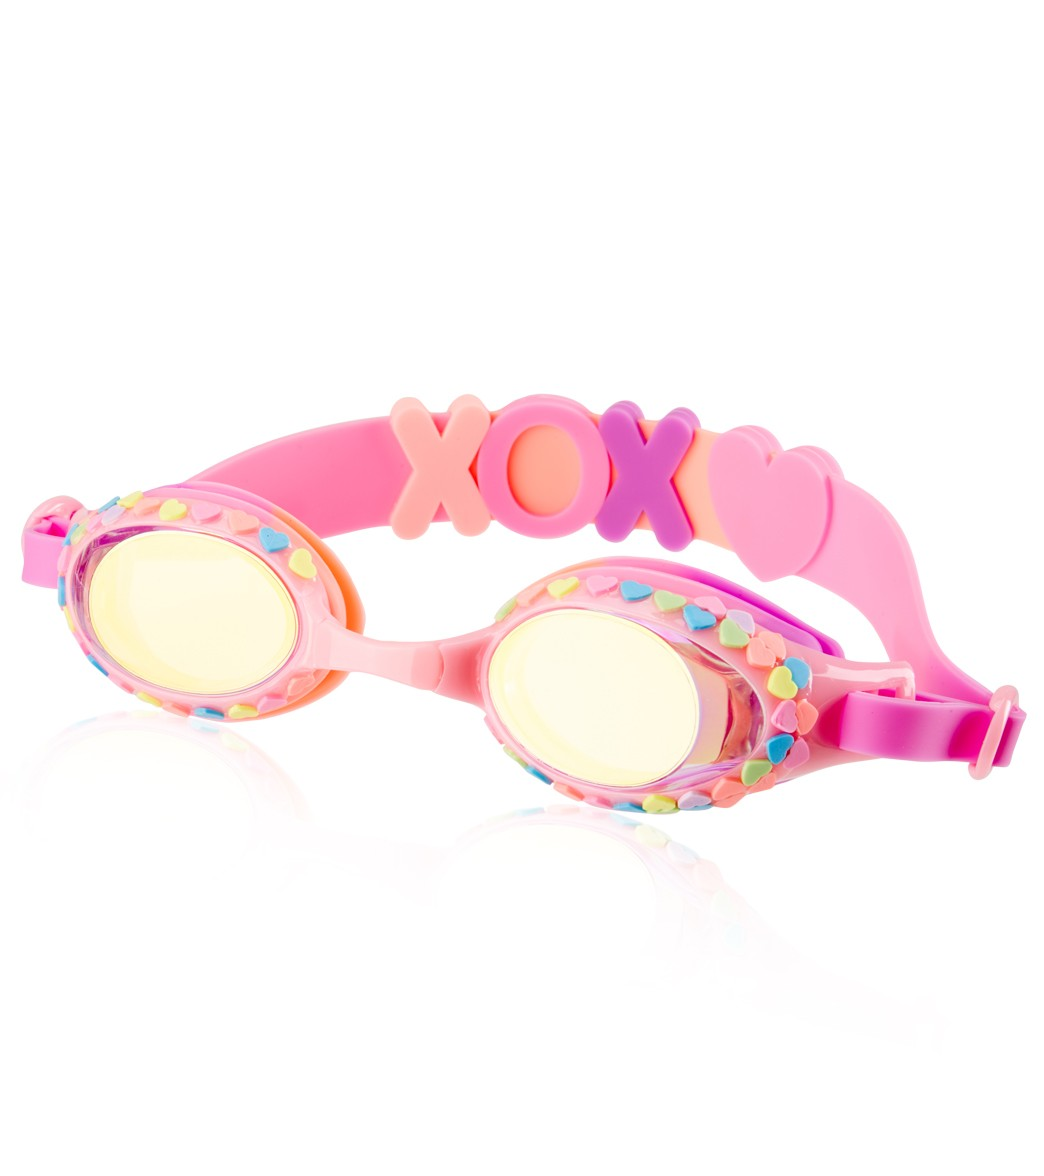 7ec1fc9b747 Bling2O Kids  Candy Hearts Swim Goggle at SwimOutlet.com